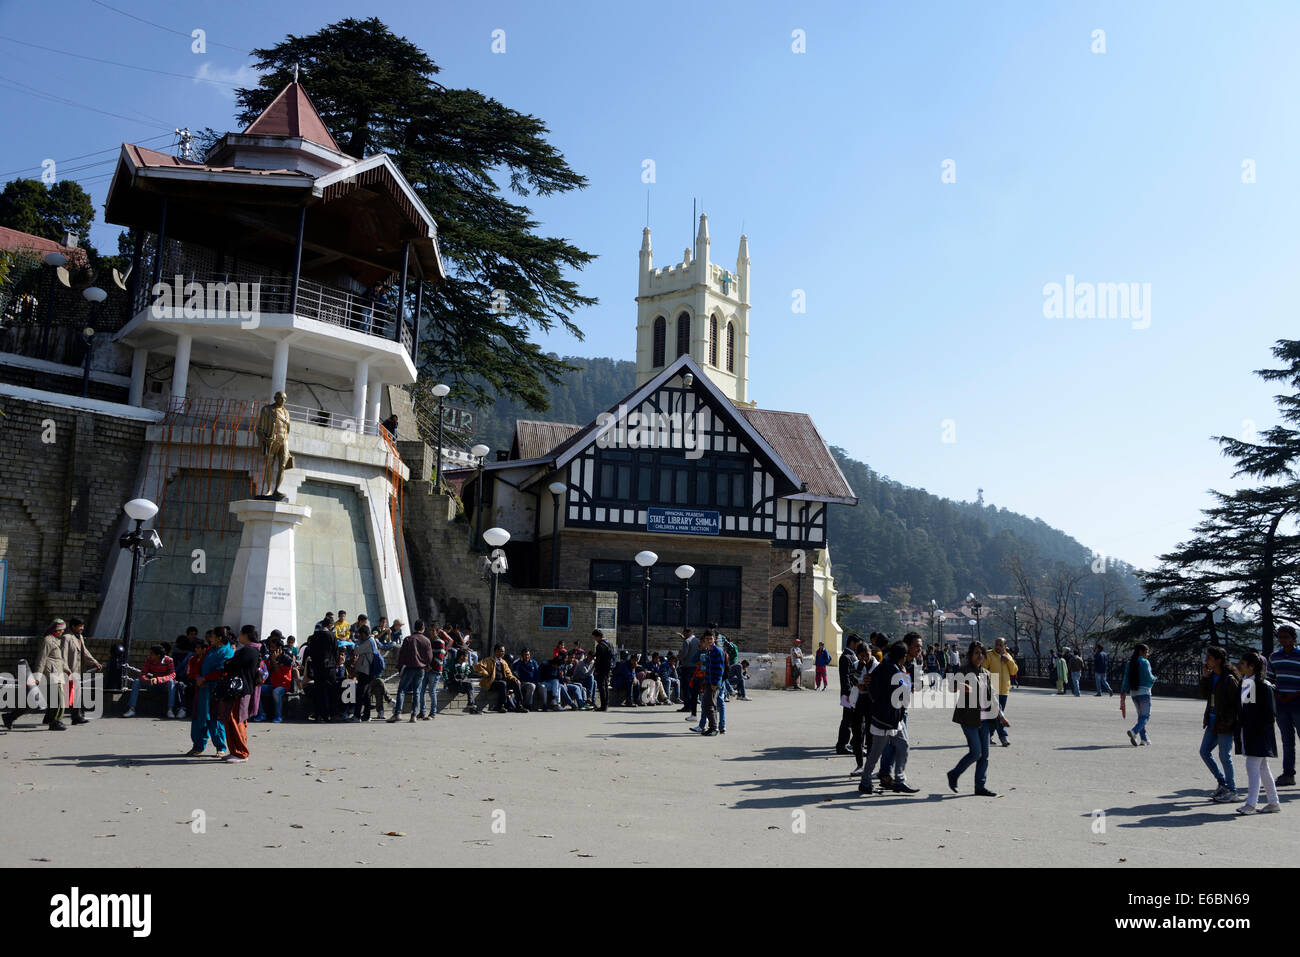 Visitors on the Ridge with Christ Church tower and the Tudor styled Shilam public library in Shimla ,Himachal Pradesh,India - Stock Image